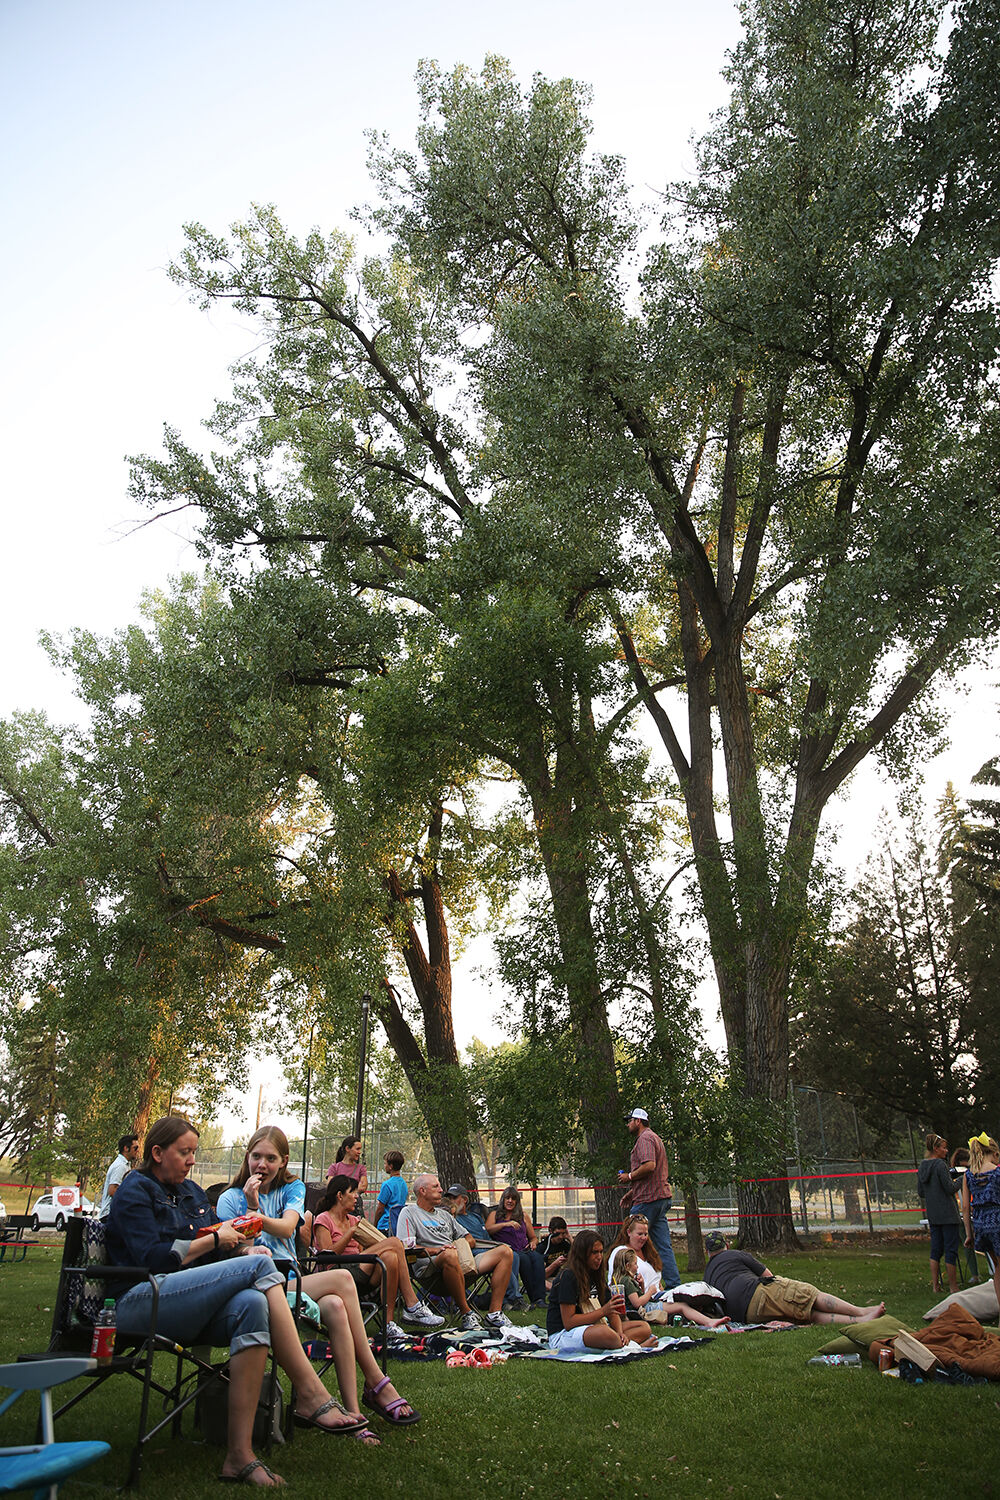 The Chamber of Commerce hosted a movie in the park